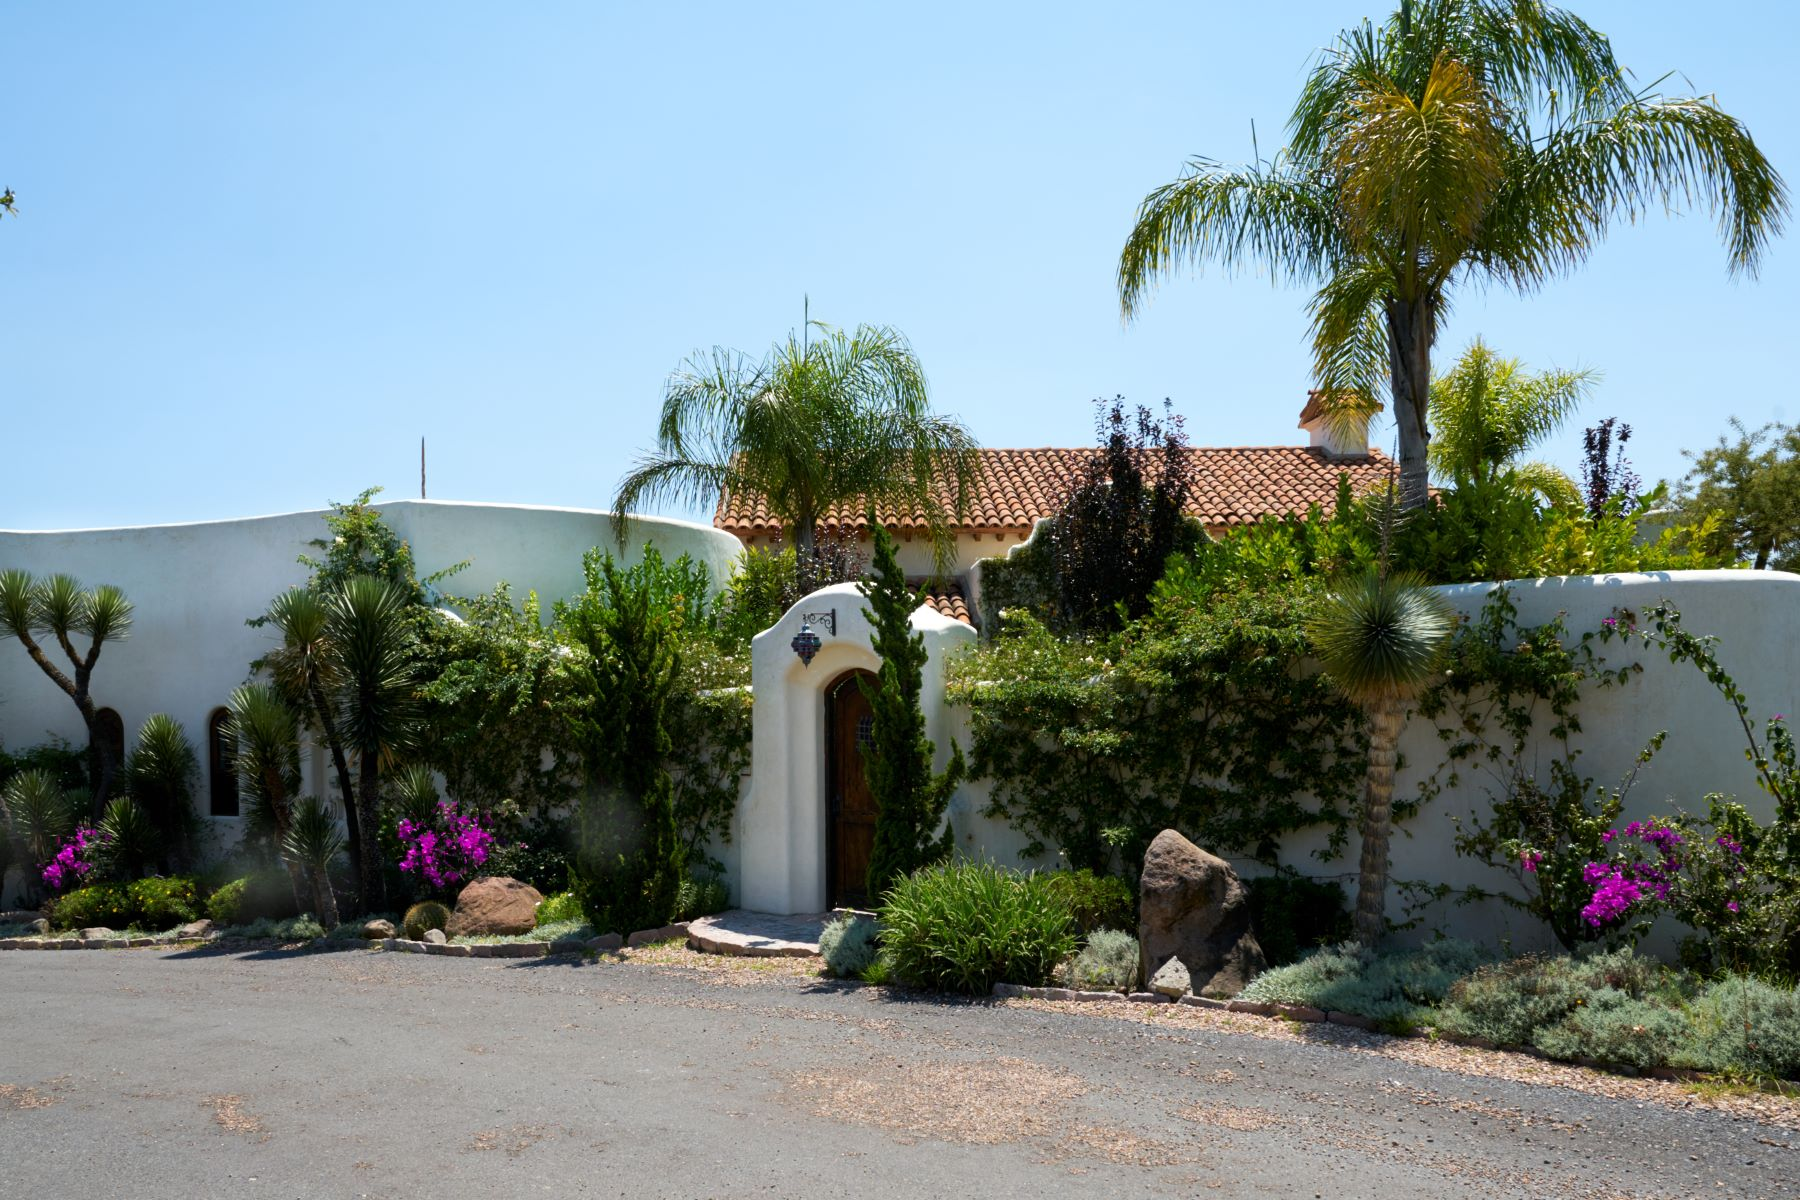 Additional photo for property listing at Casa Vista de los Picachos Candelaria, San Miguel De Allende, Guanajuato Mexico